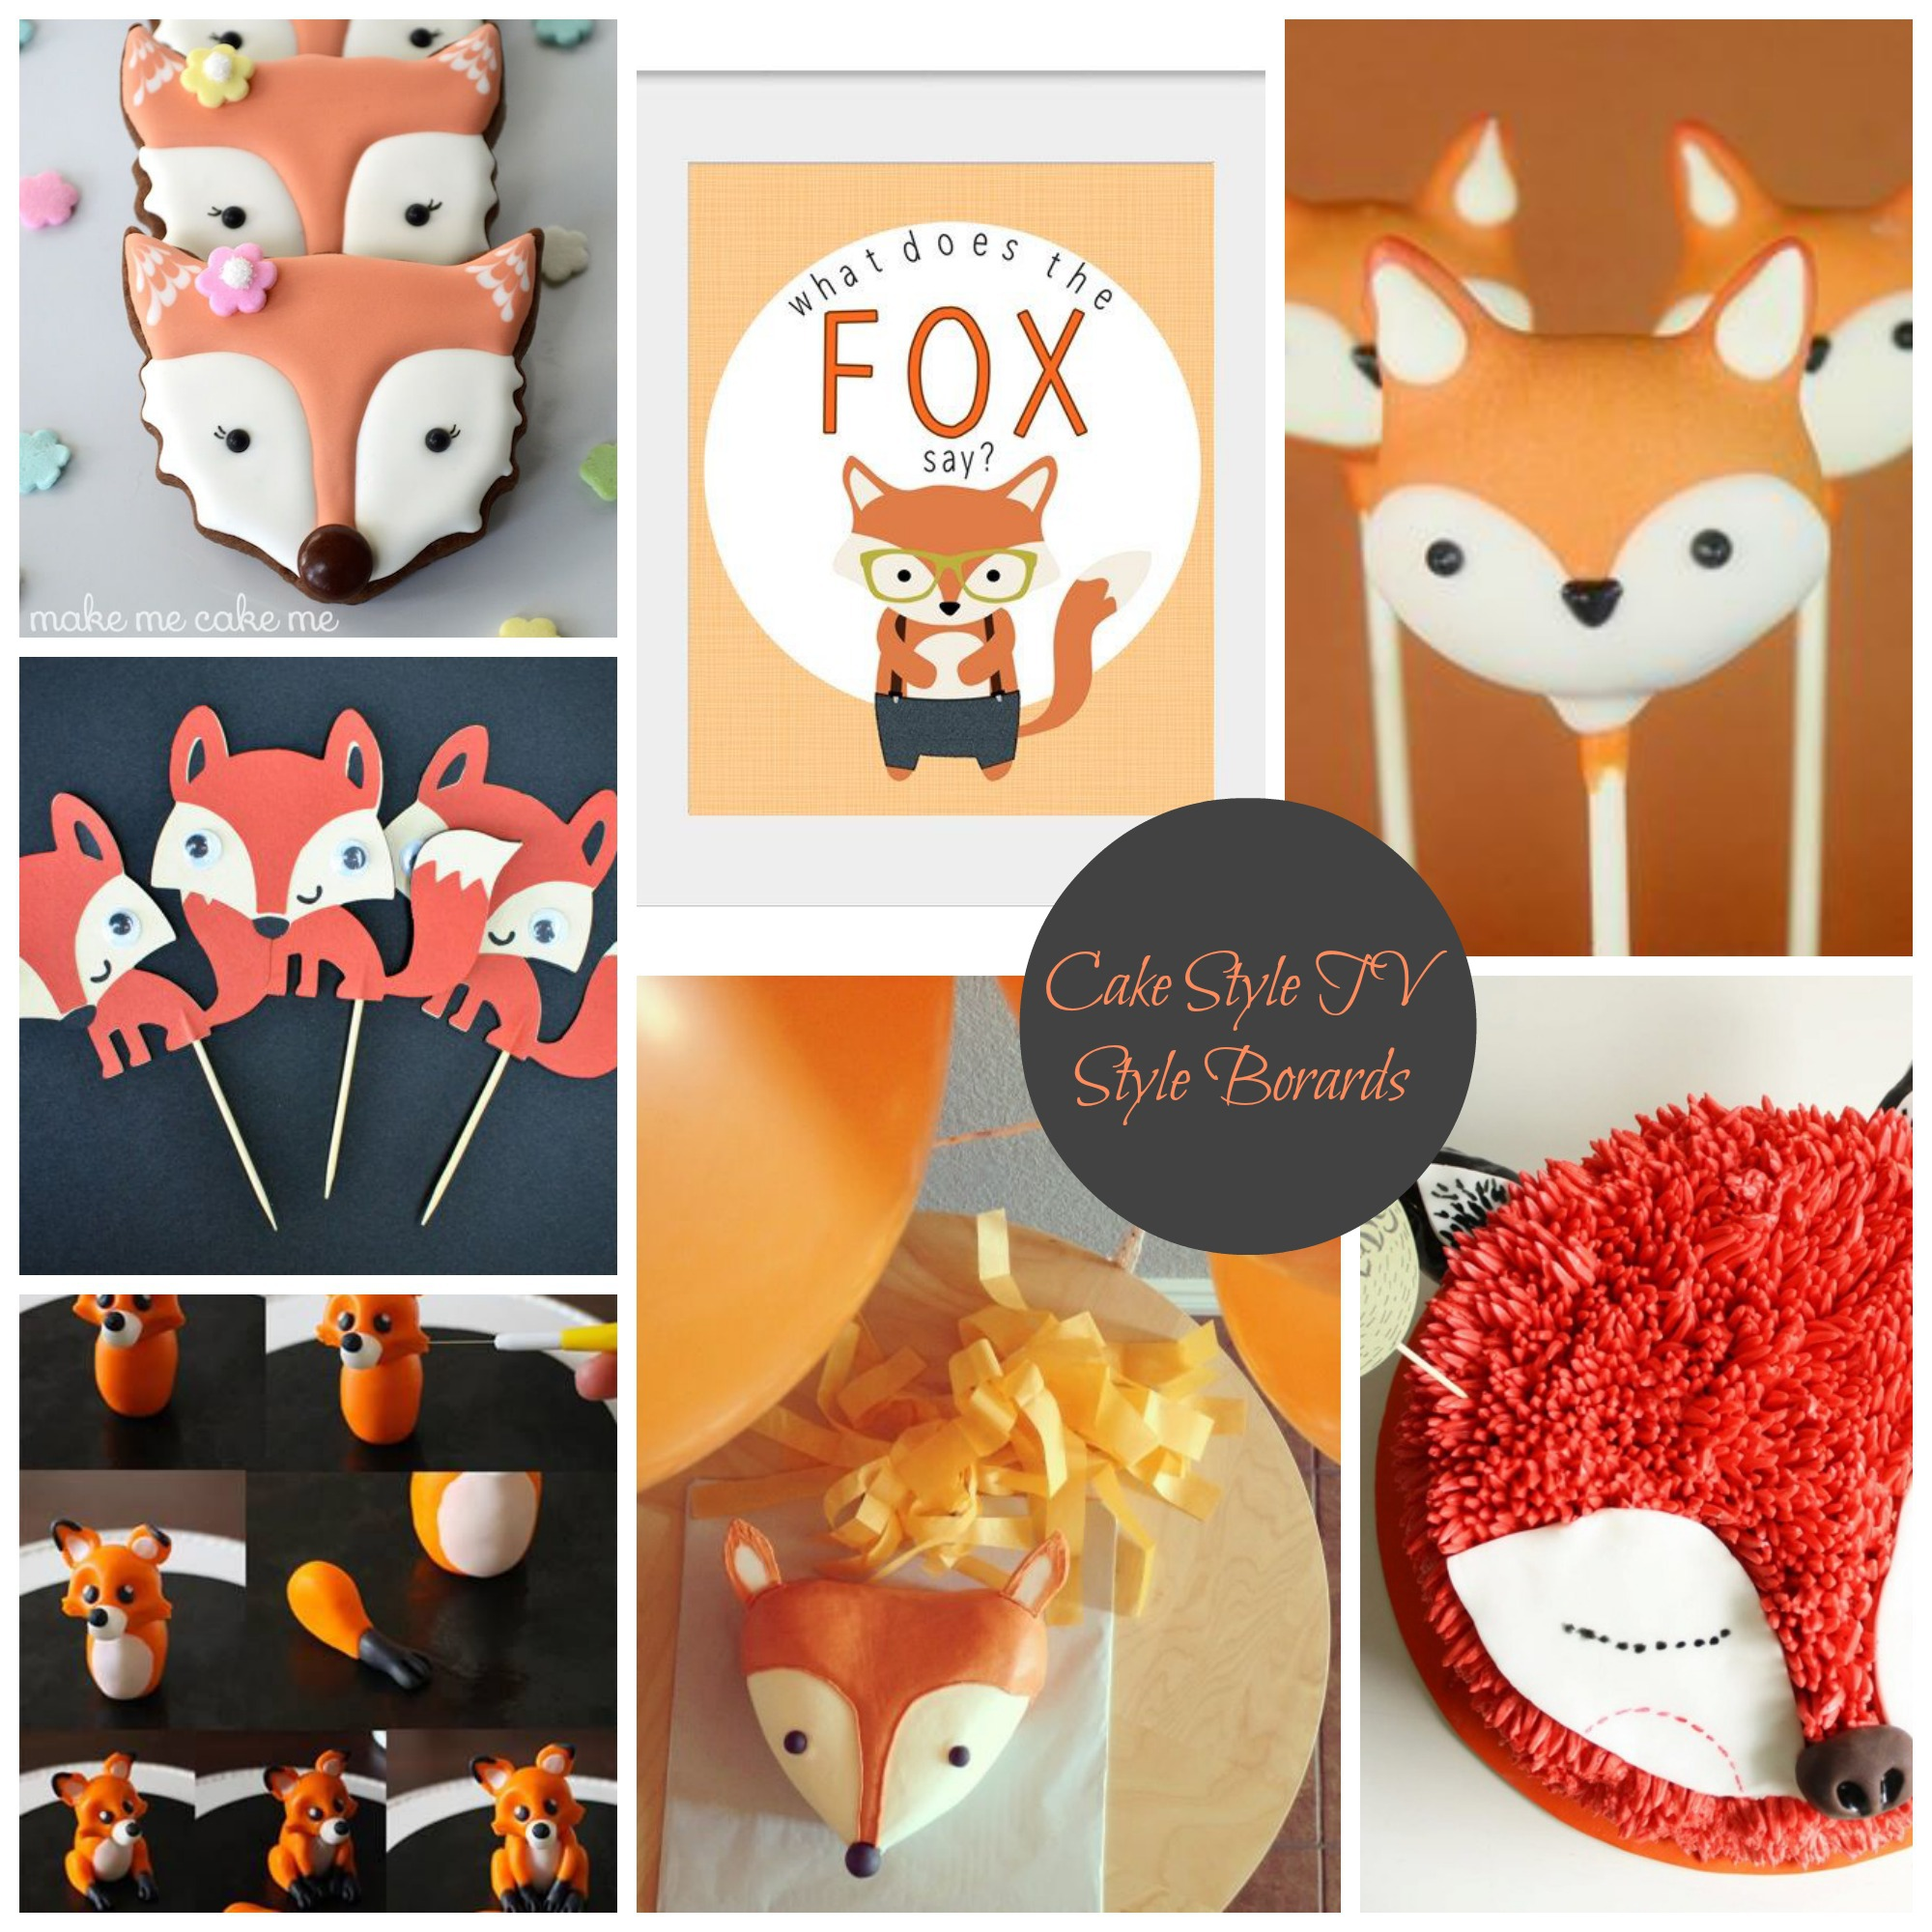 What Does the Fox Say Cake